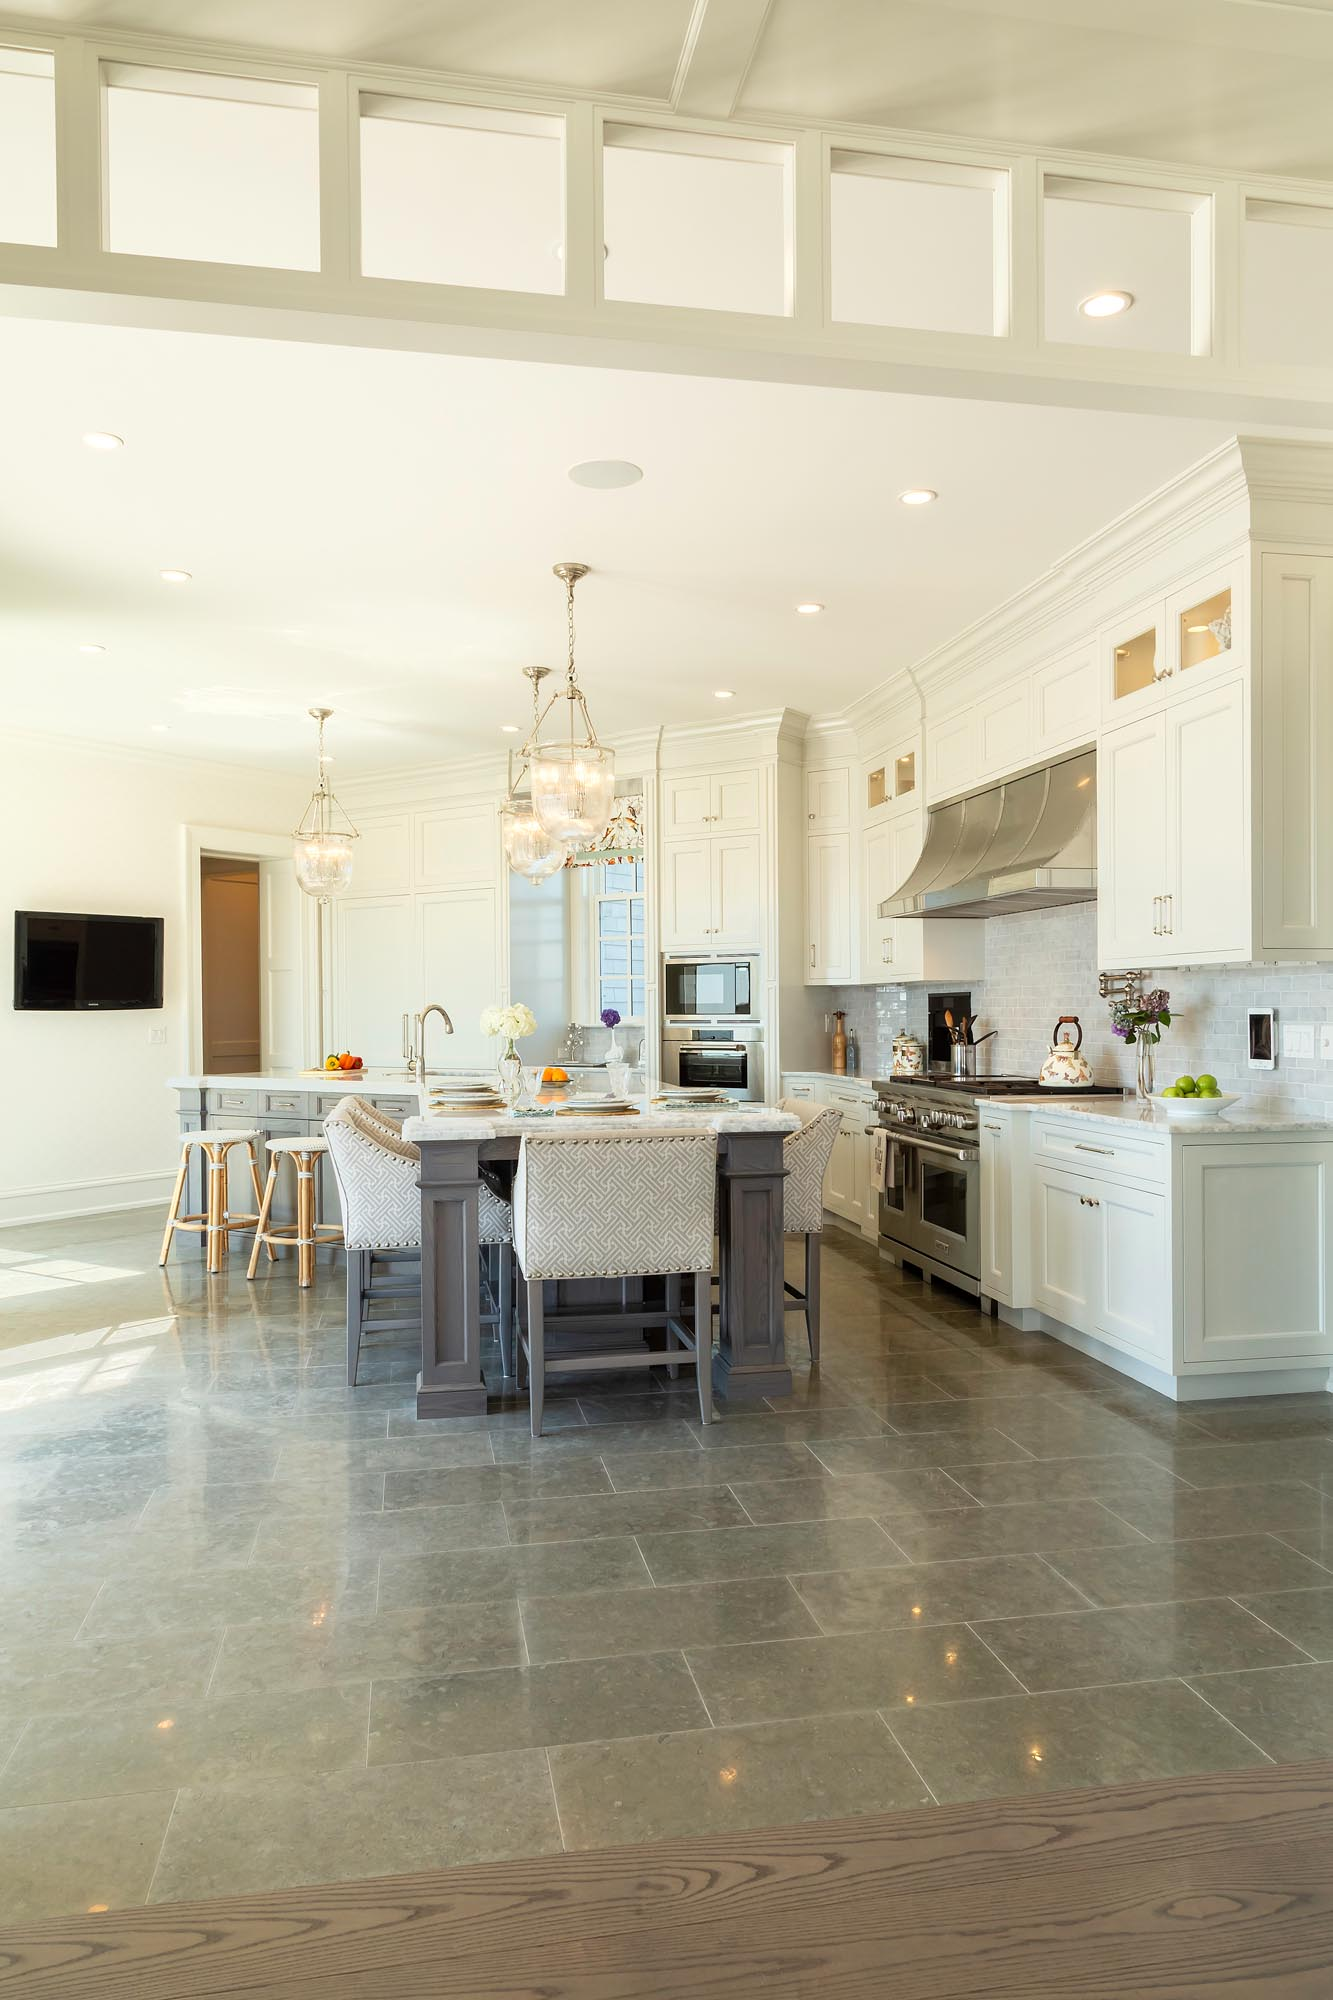 Transitional white kitchen with detailed millwork